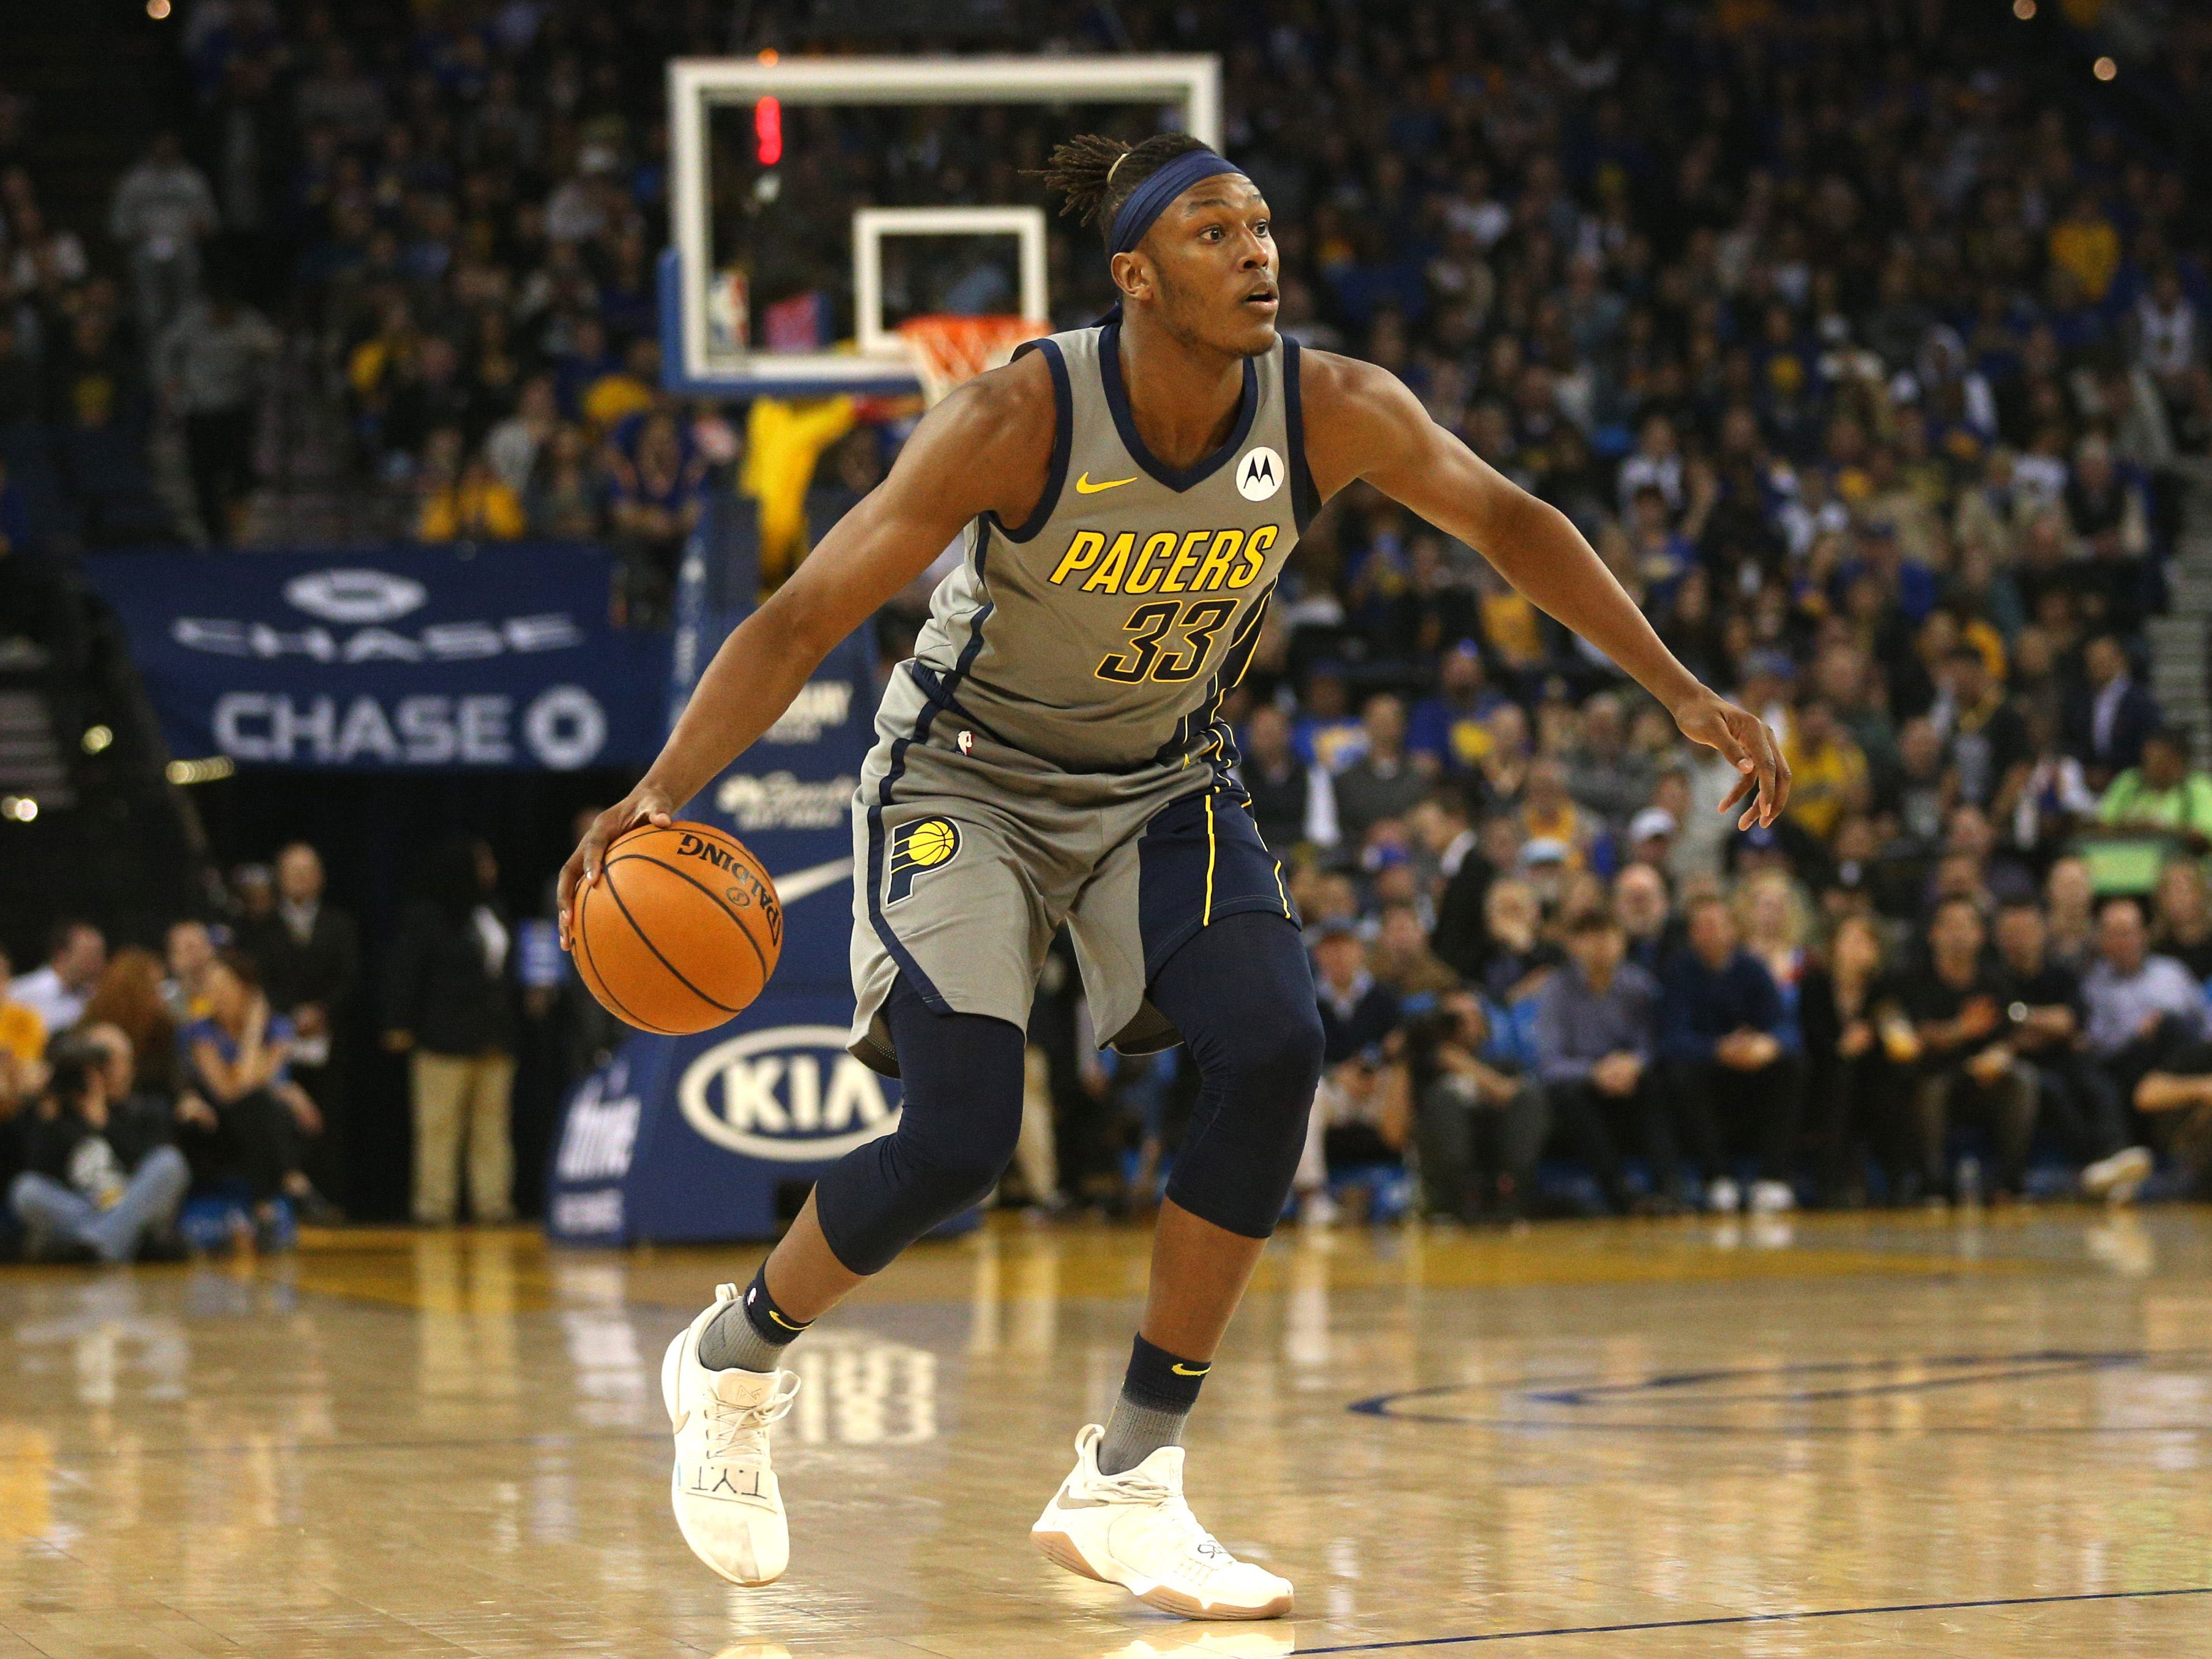 Mar 21, 2019; Oakland, CA, USA; Indiana Pacers center Myles Turner (33) dribbles the ball against the Golden State Warriors in the first quarter at Oracle Arena.